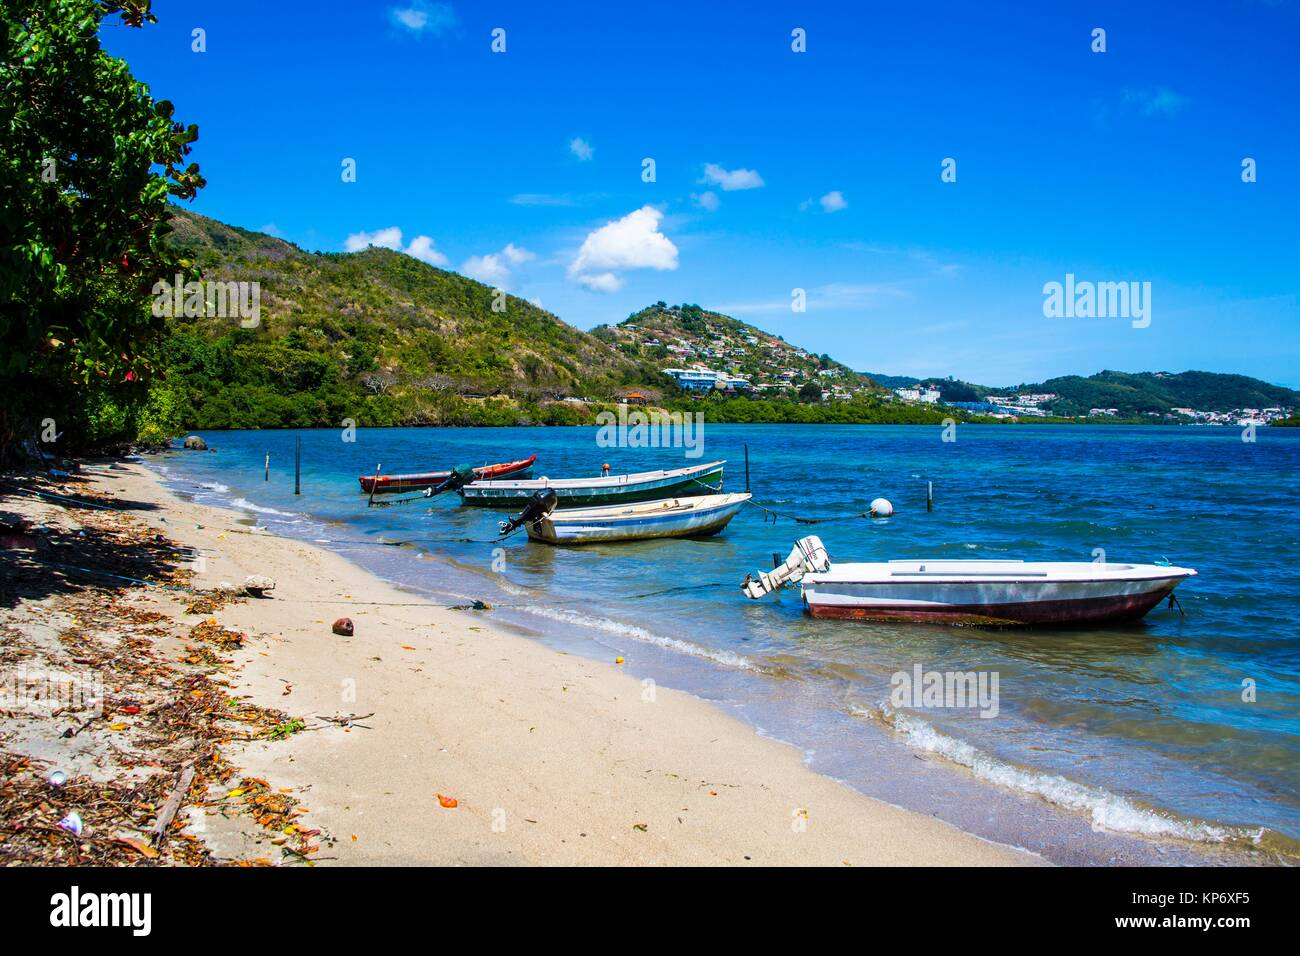 Paradise perfect blue beaches, with palm trees and white sand. They reflect the perfect paradise. - Stock Image